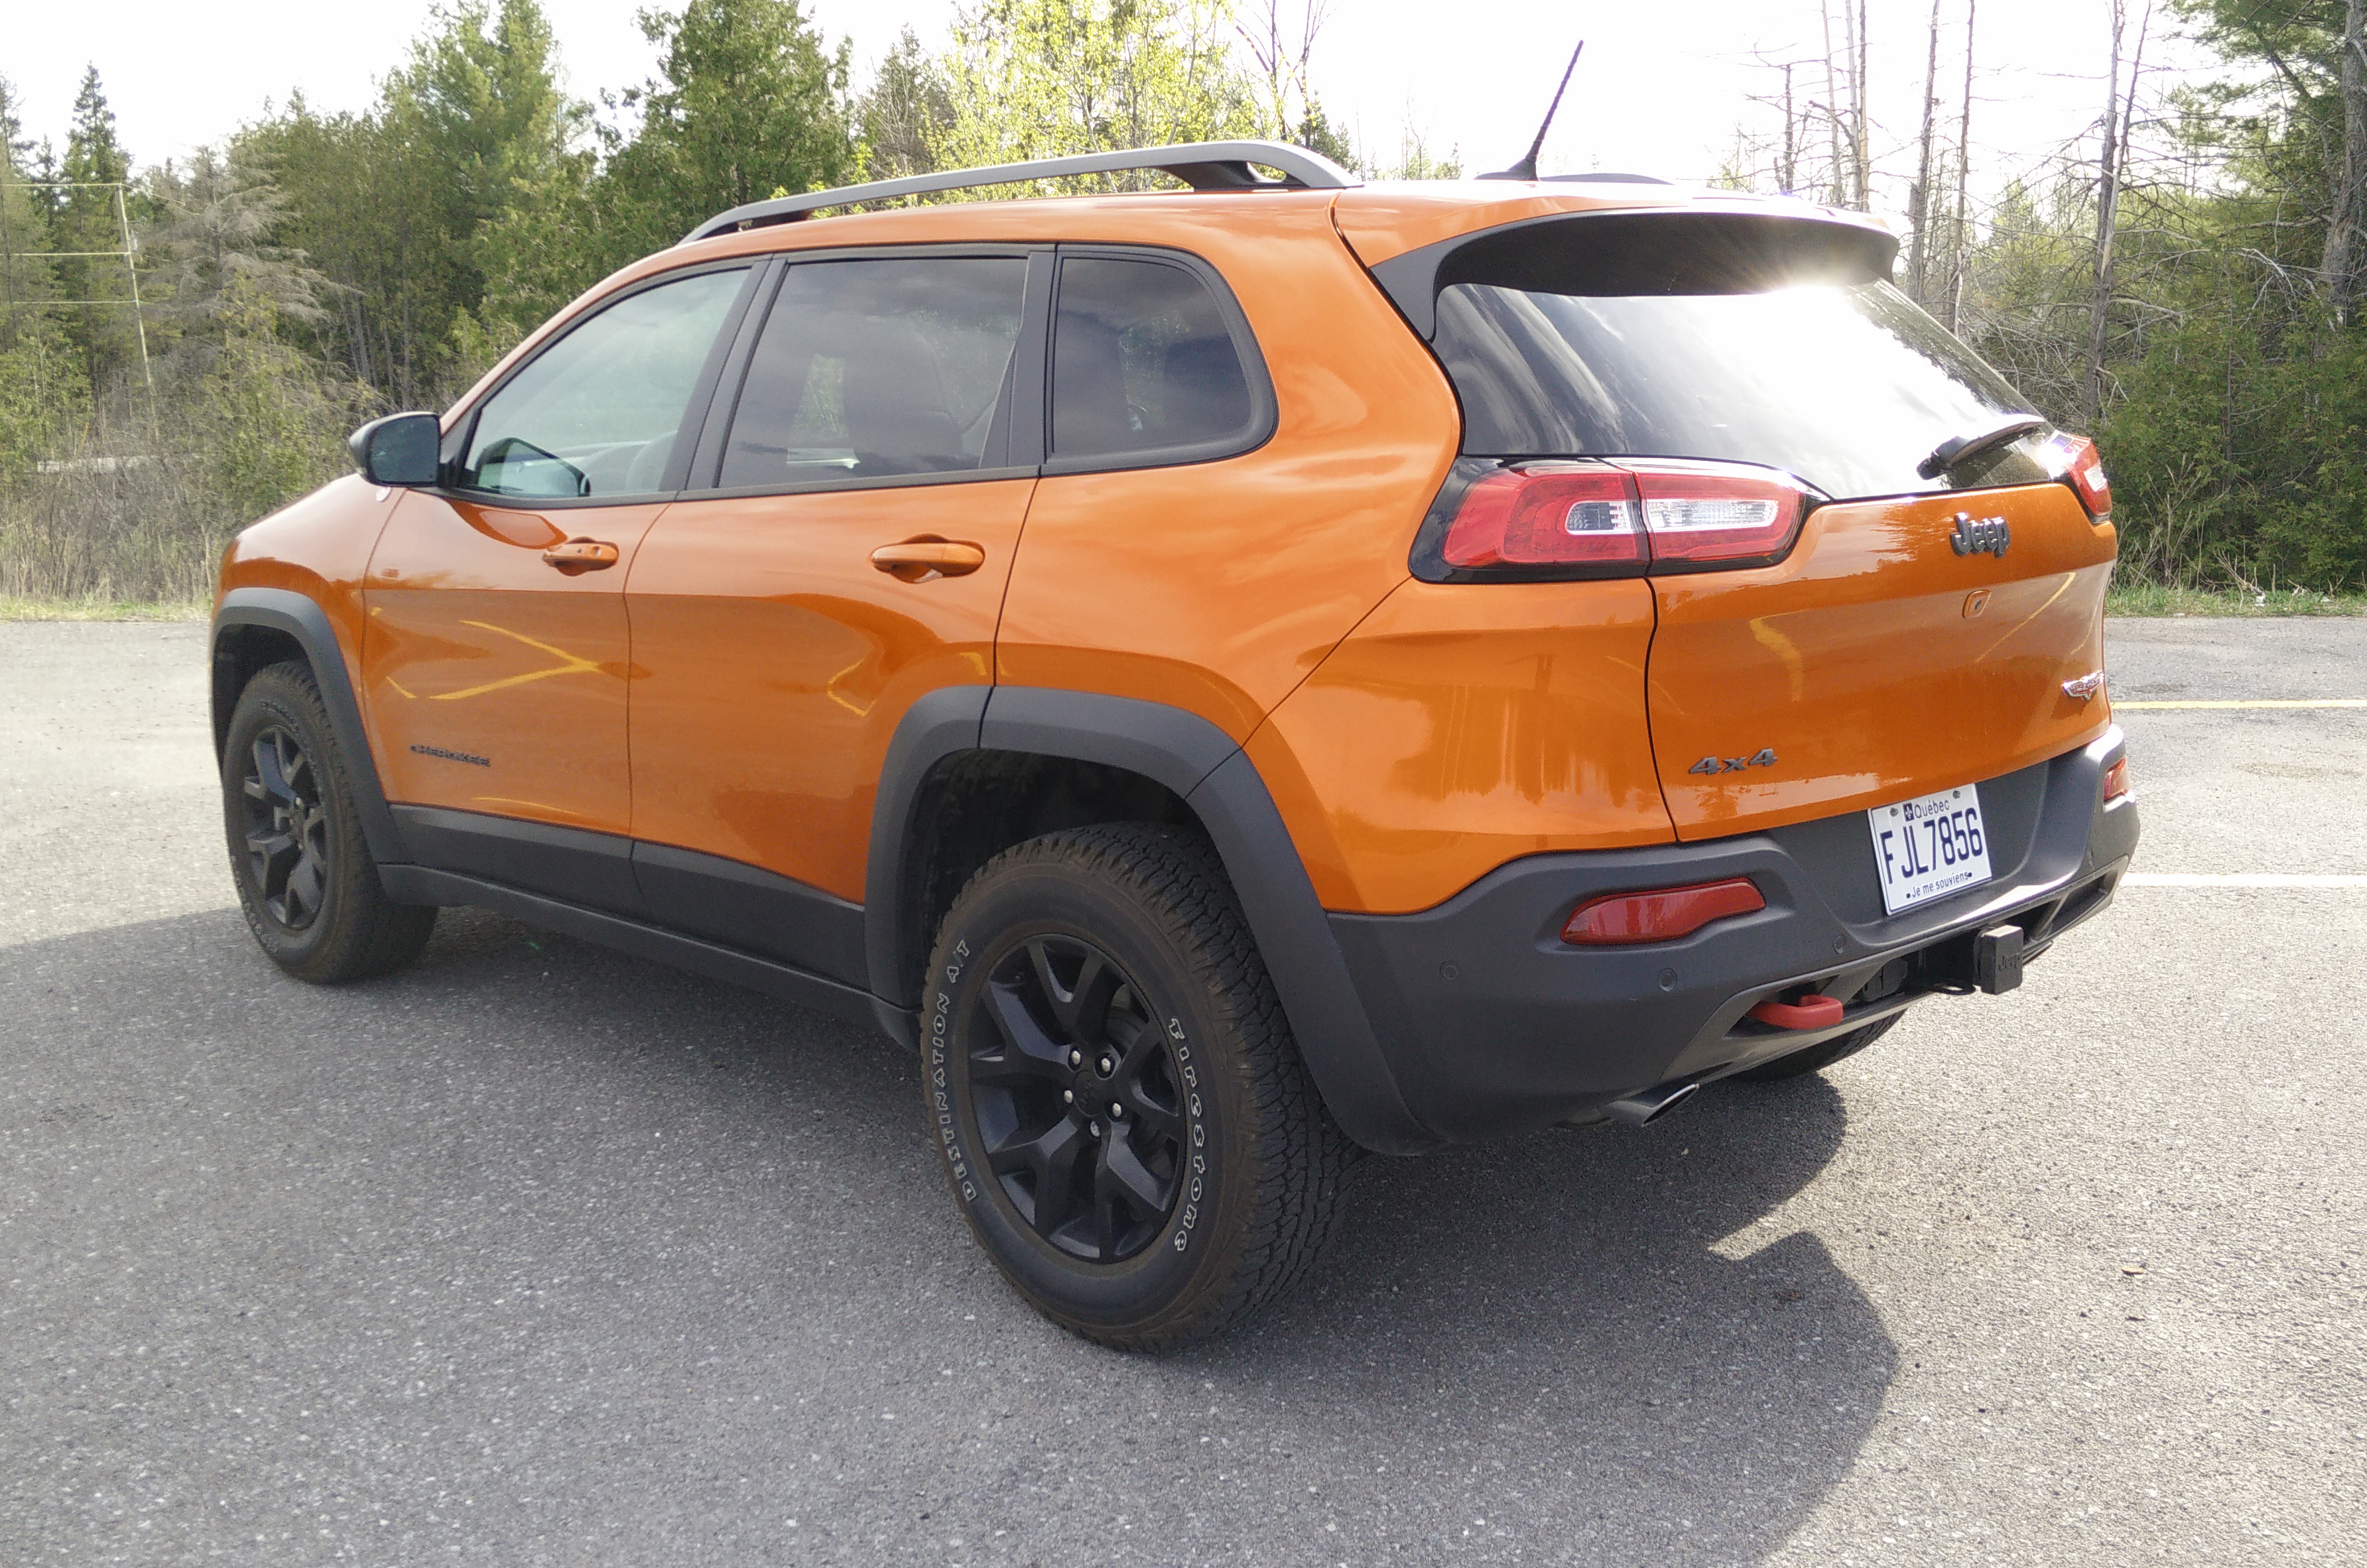 a preview trailhawk share holds most img crossover philippines pims or at compact jeep from capturing end is cherokee bet now dynamic market s also midsize high of the competitive